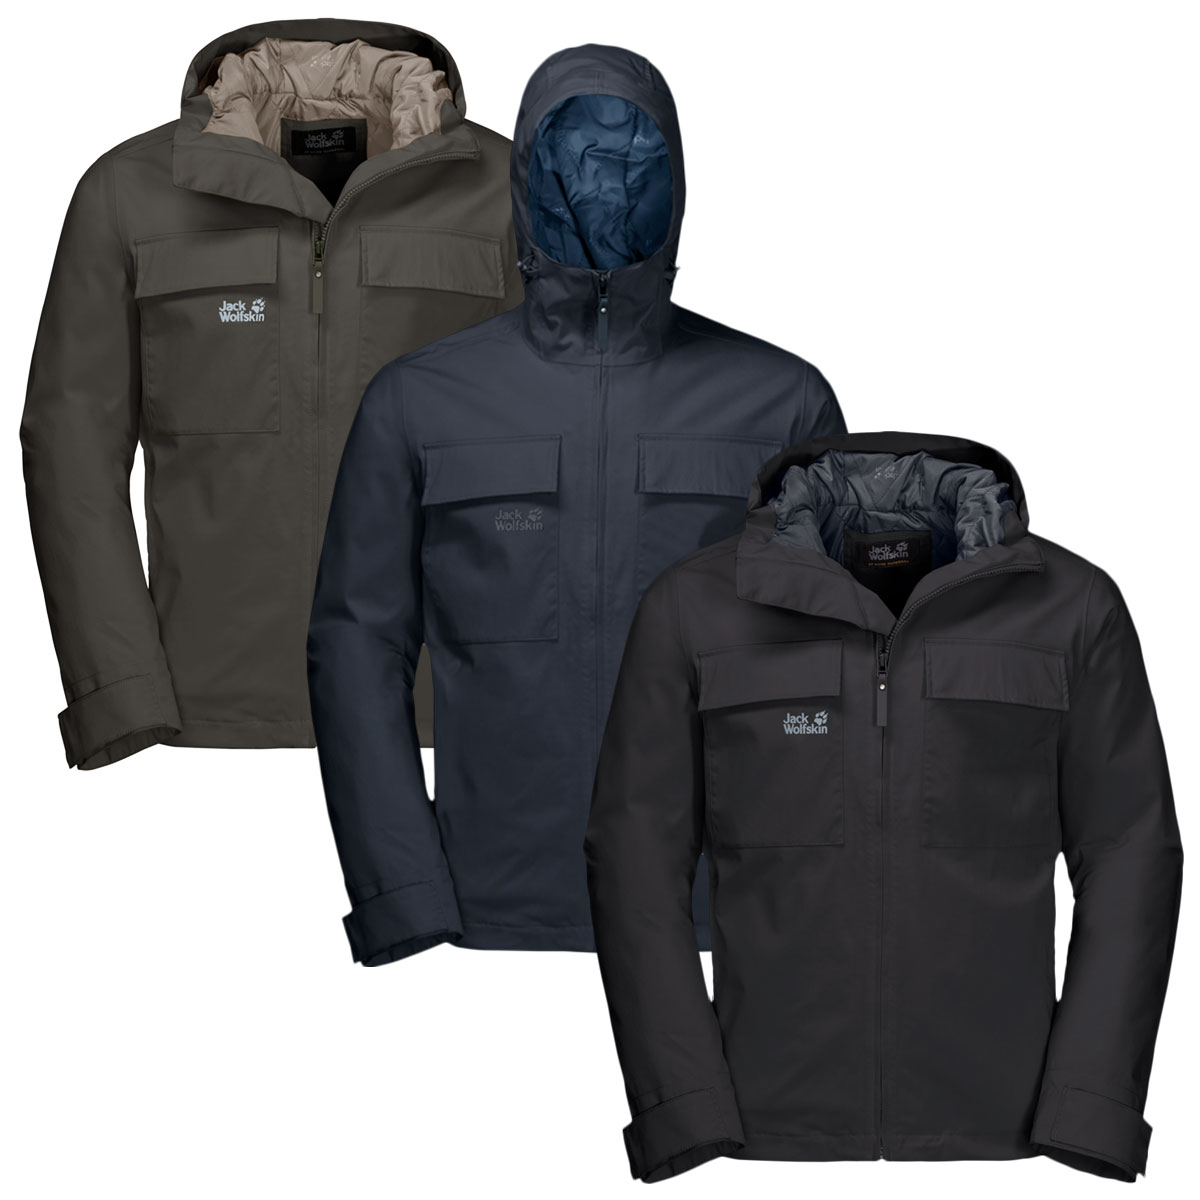 JACK WOLFSKIN Waterproof Jackets | Blacks